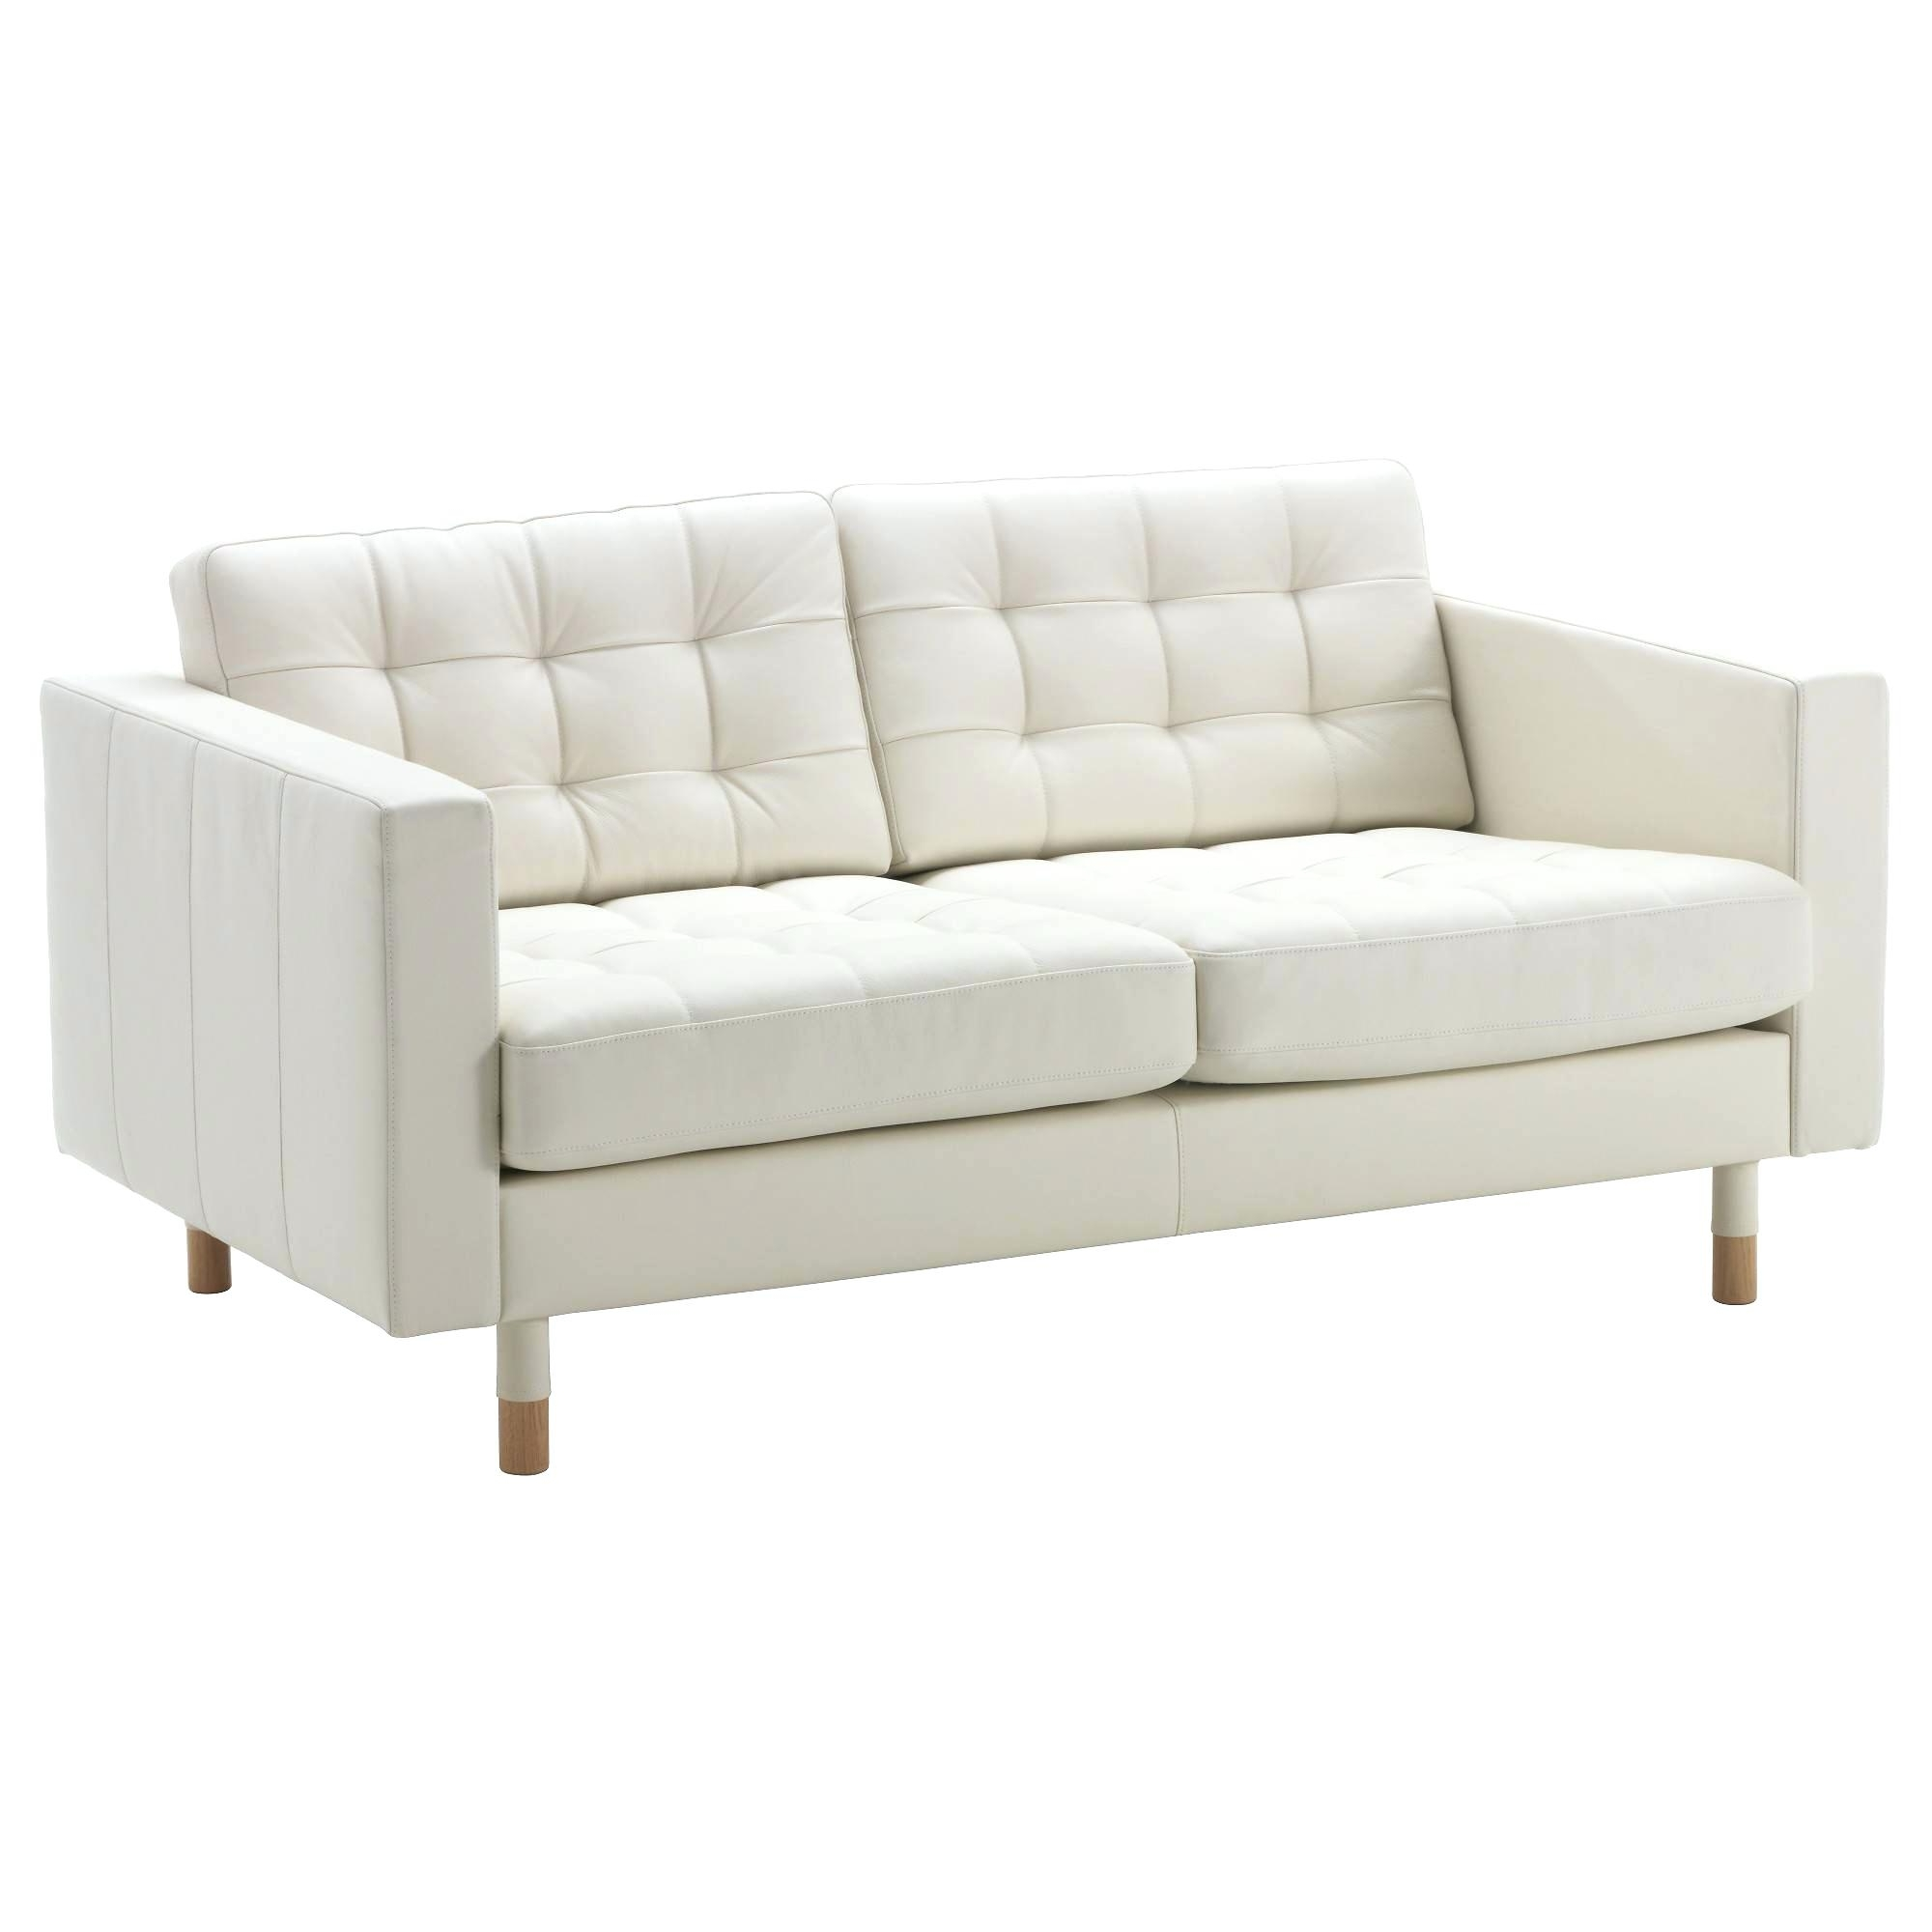 Small 2 Seater Sofas Pertaining To Current Small Sofas Leather Ikea 2 Seater Sofa With Storage Target (View 11 of 15)